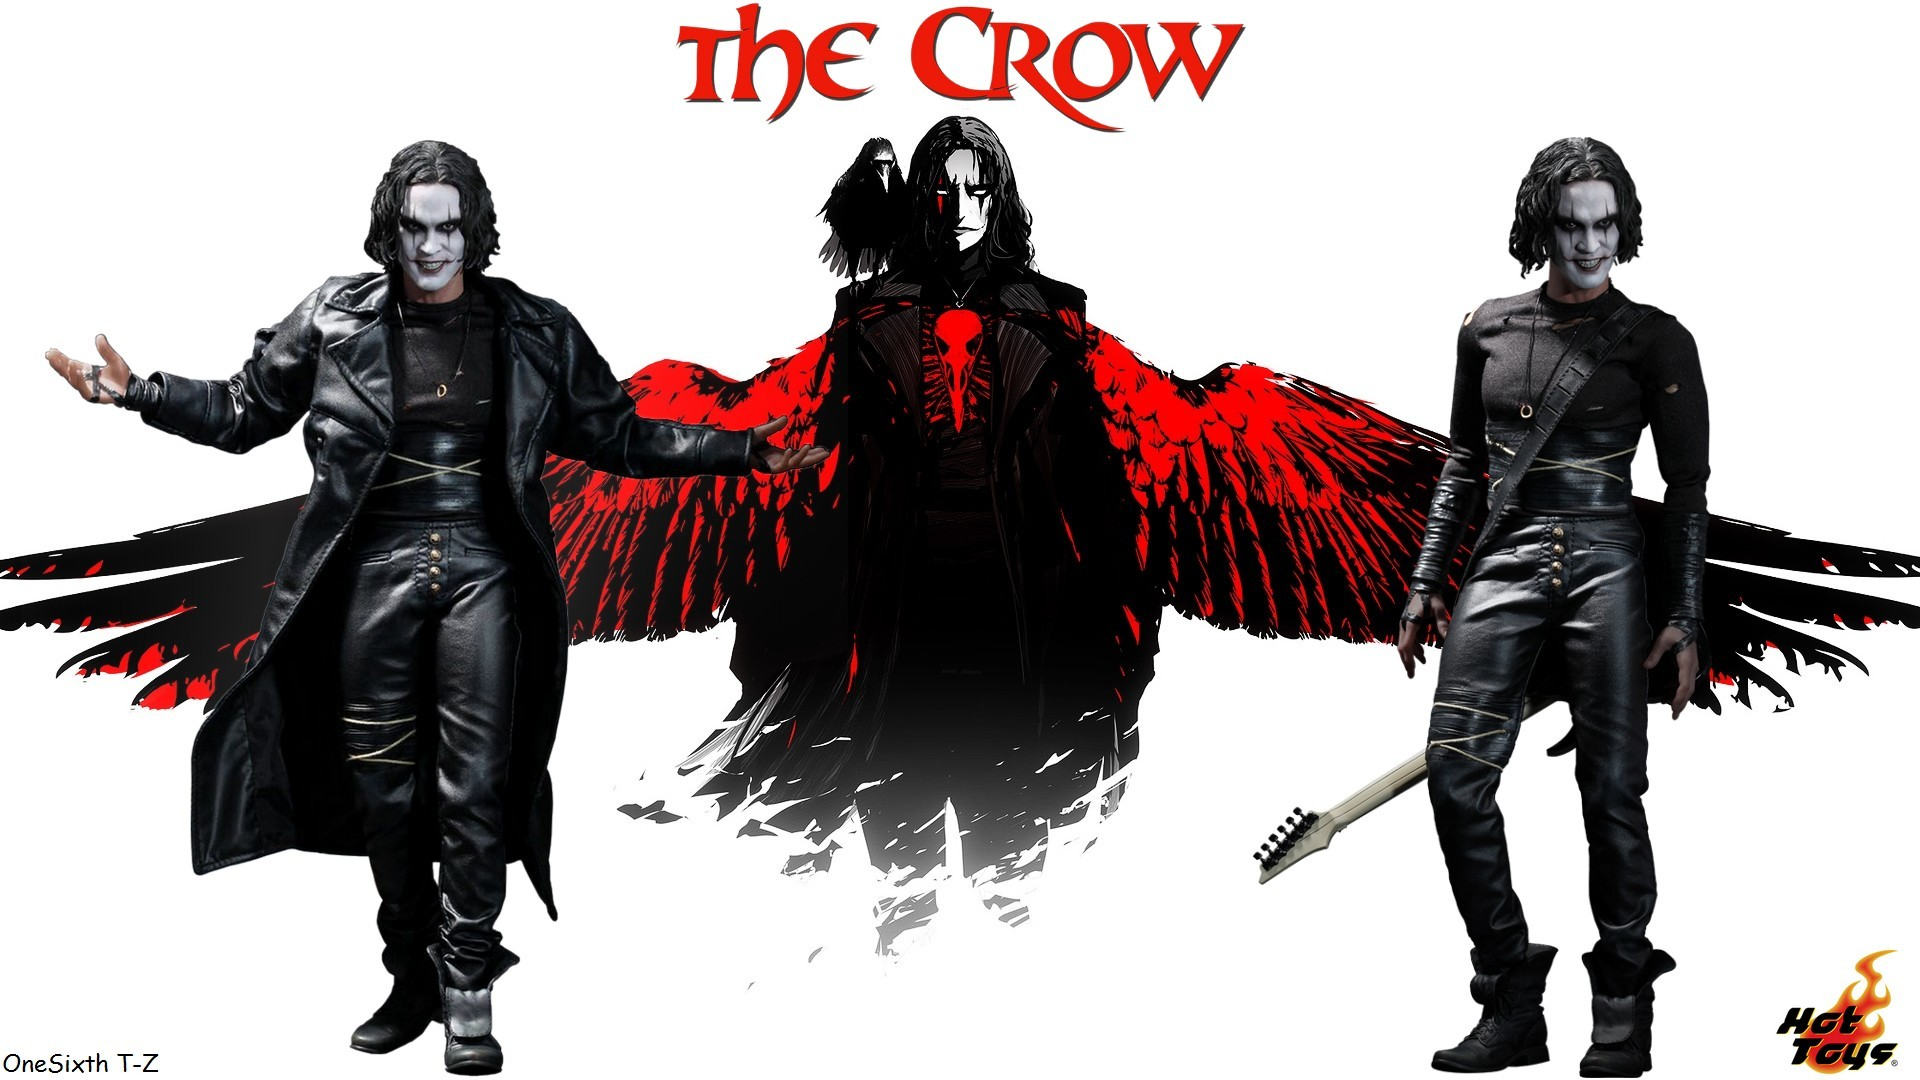 the crow hd wallpaper by onesixth t z hot toys the crow hd wallpaper .